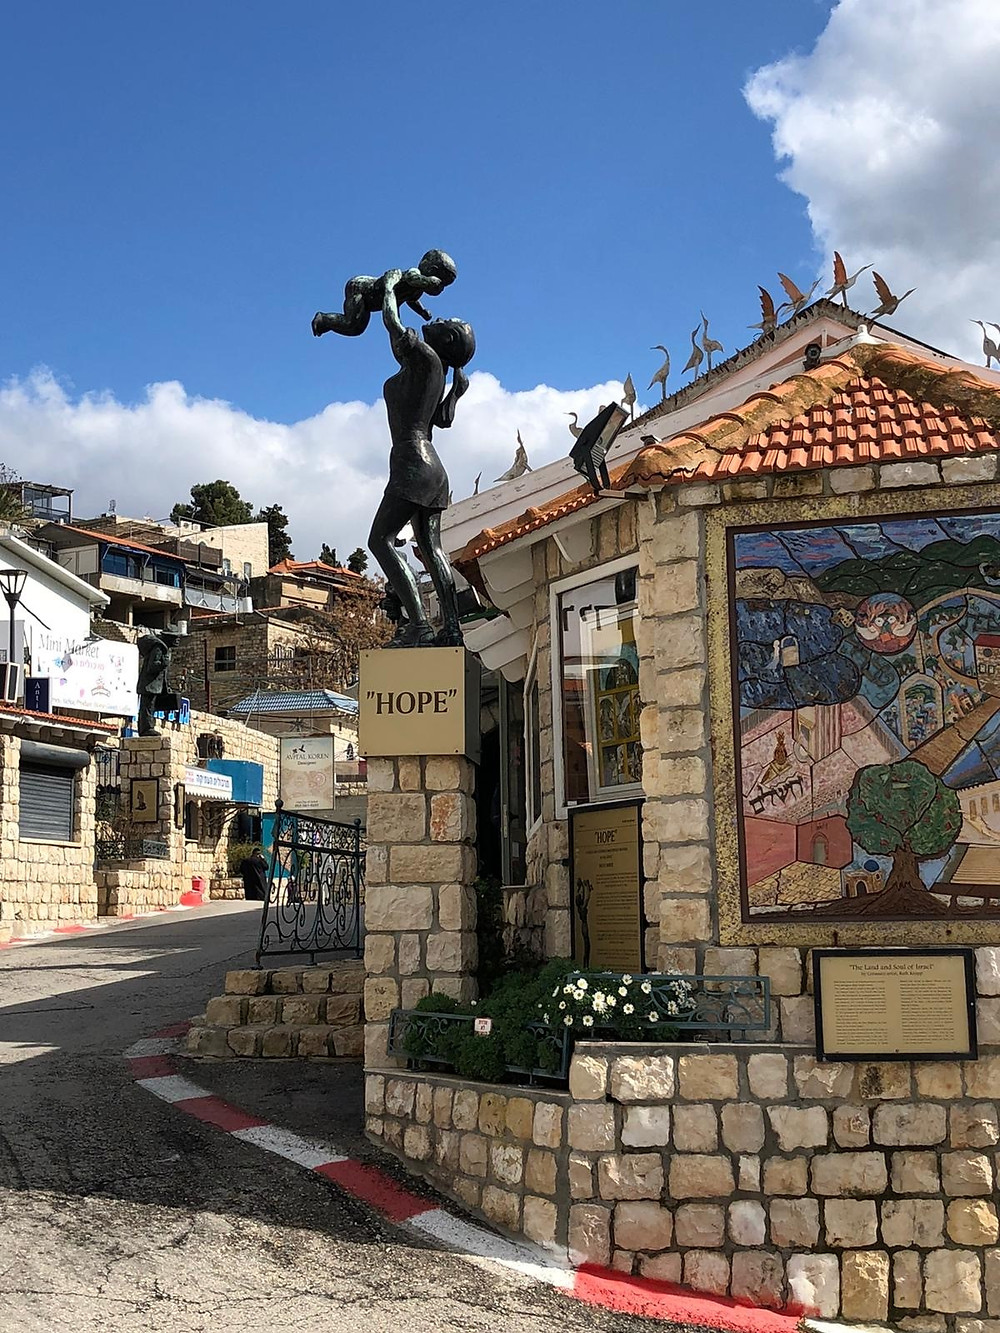 """HOPE"" sculpture in the Israeli city of Safed, by Vered Ostfeld"